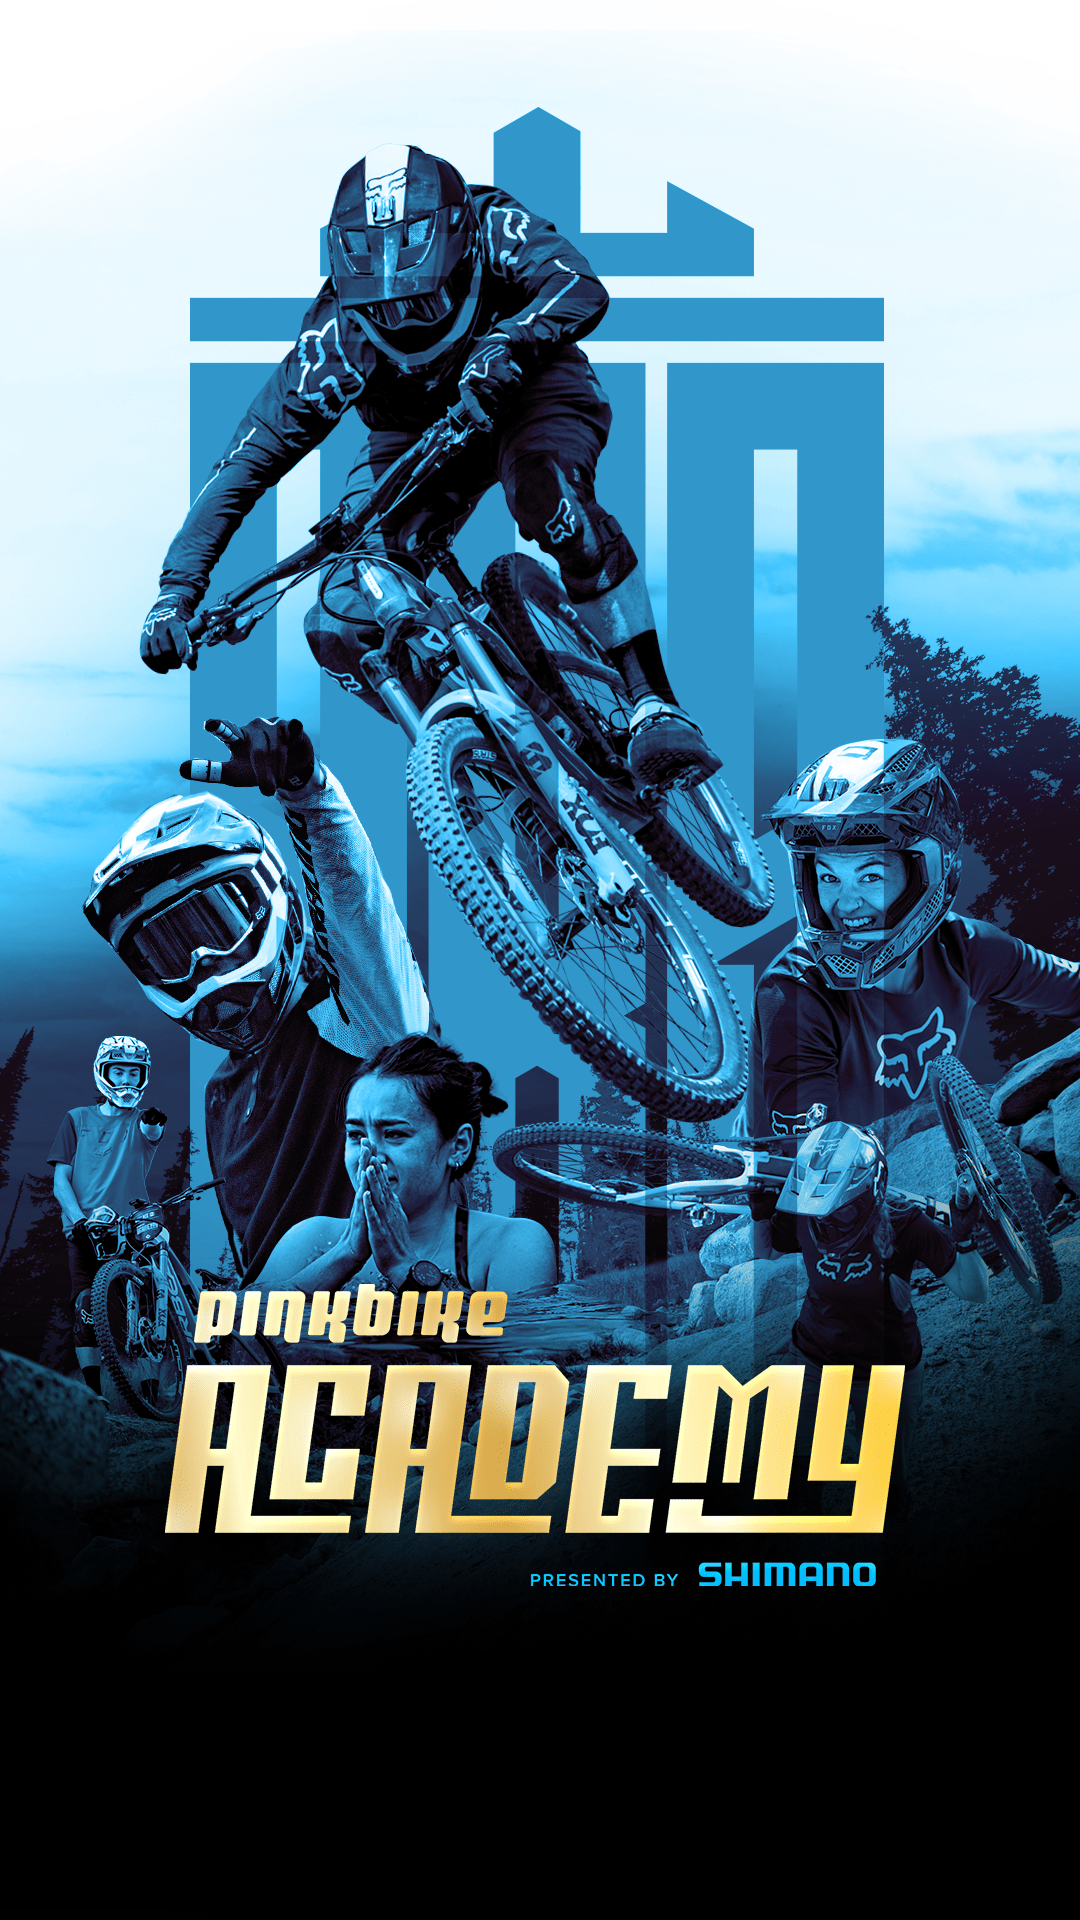 Pinkbike Academy, Now Streaming